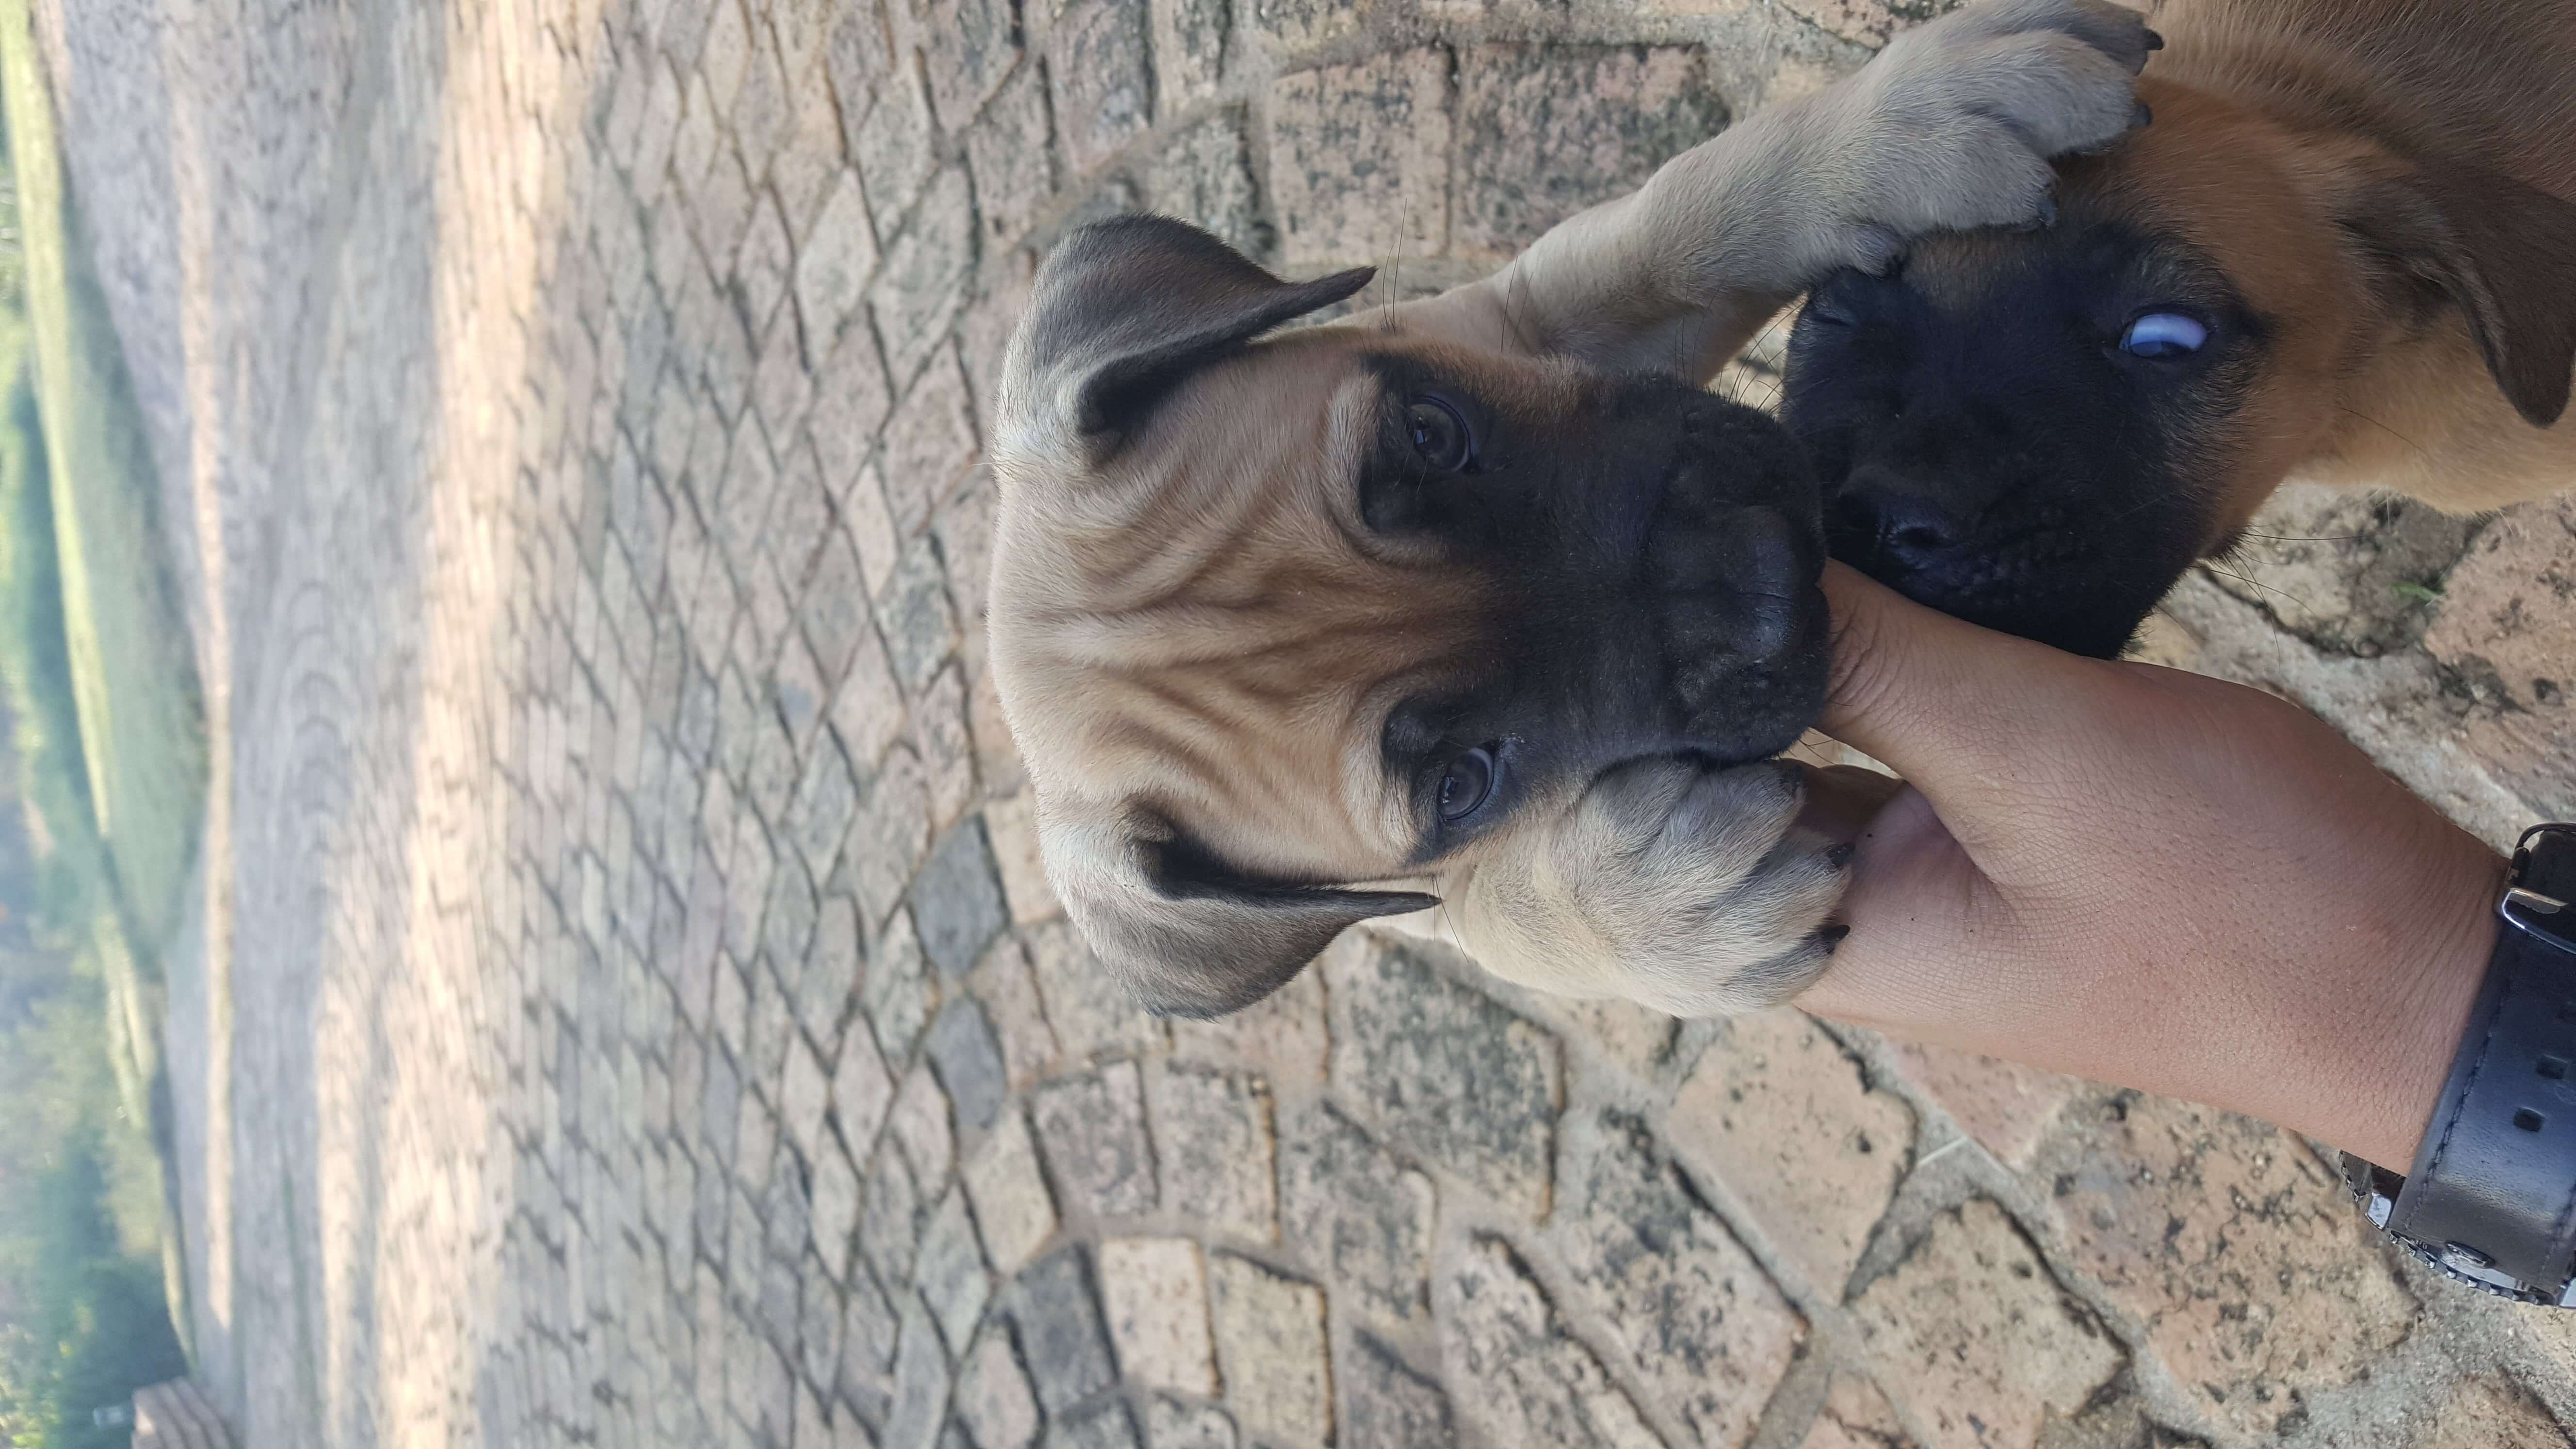 Boerboel Puppies for Sale in Johannesburg by Hendri Loots